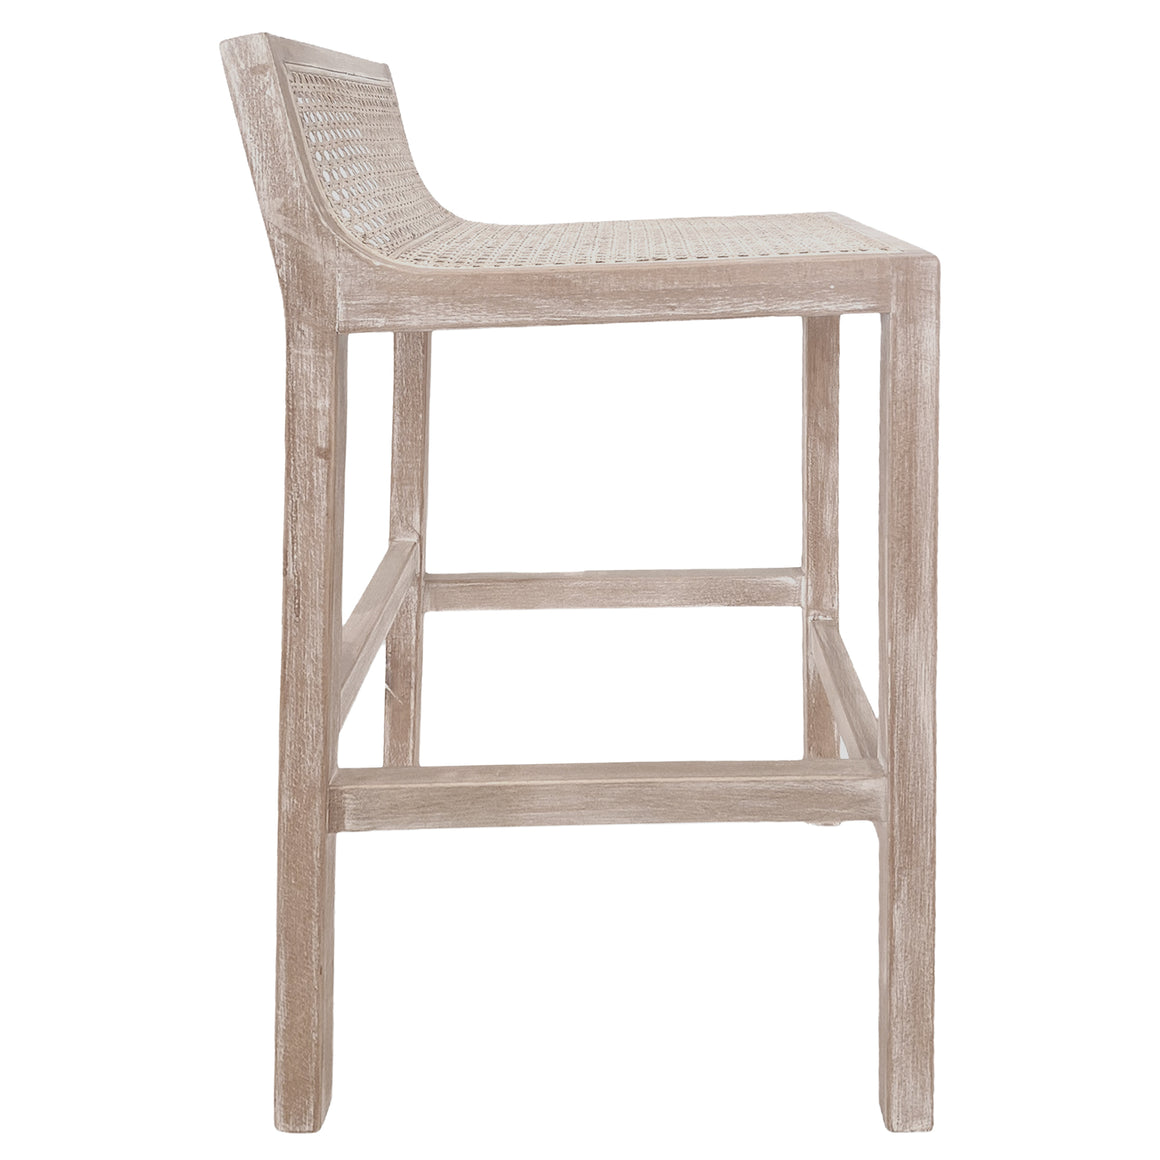 Amalfi Natural Elm and Rattan Barstool